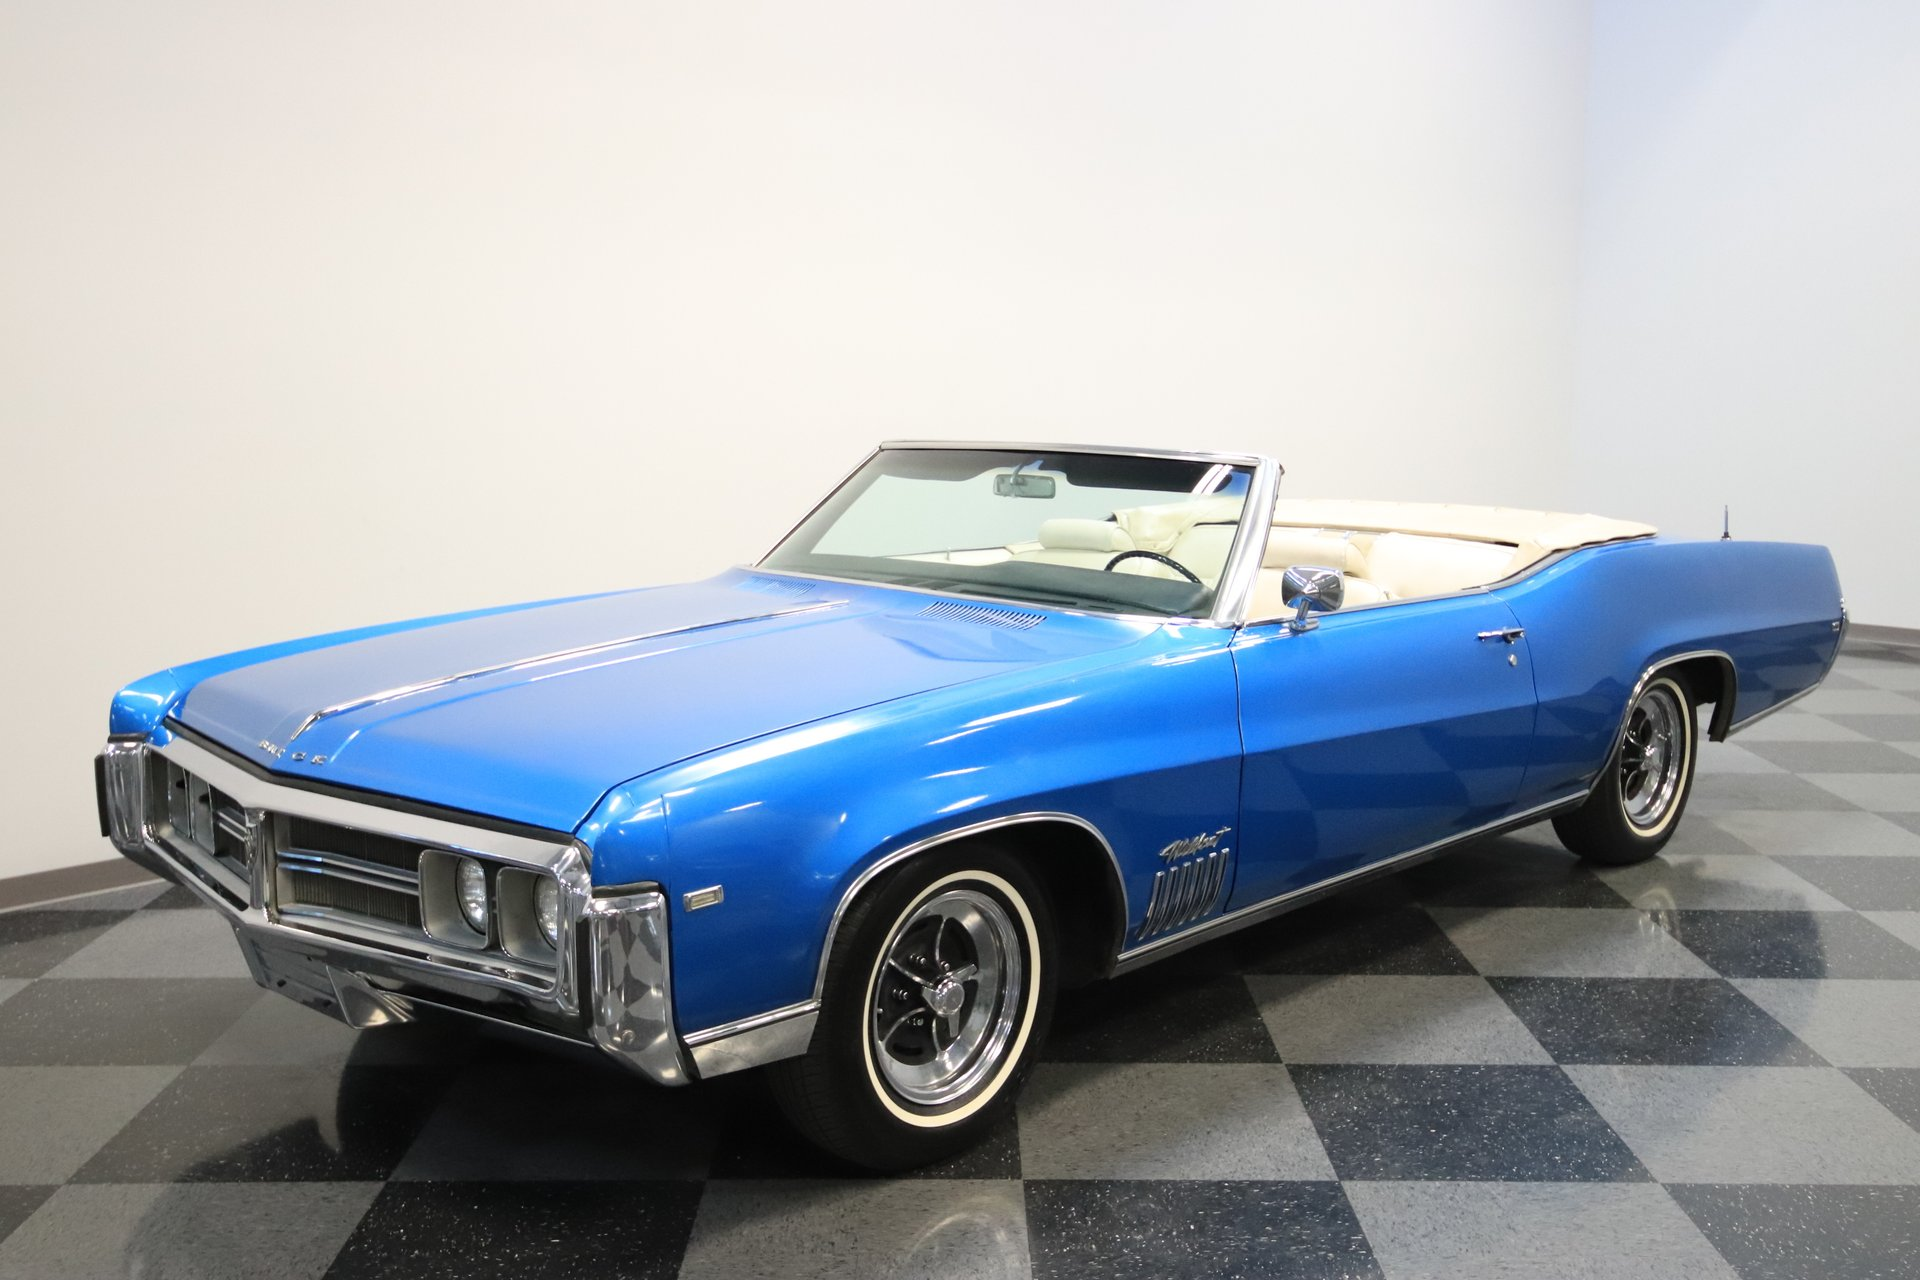 1969 Buick Wildcat Streetside Classics The Nations Trusted Car Pictures View 360